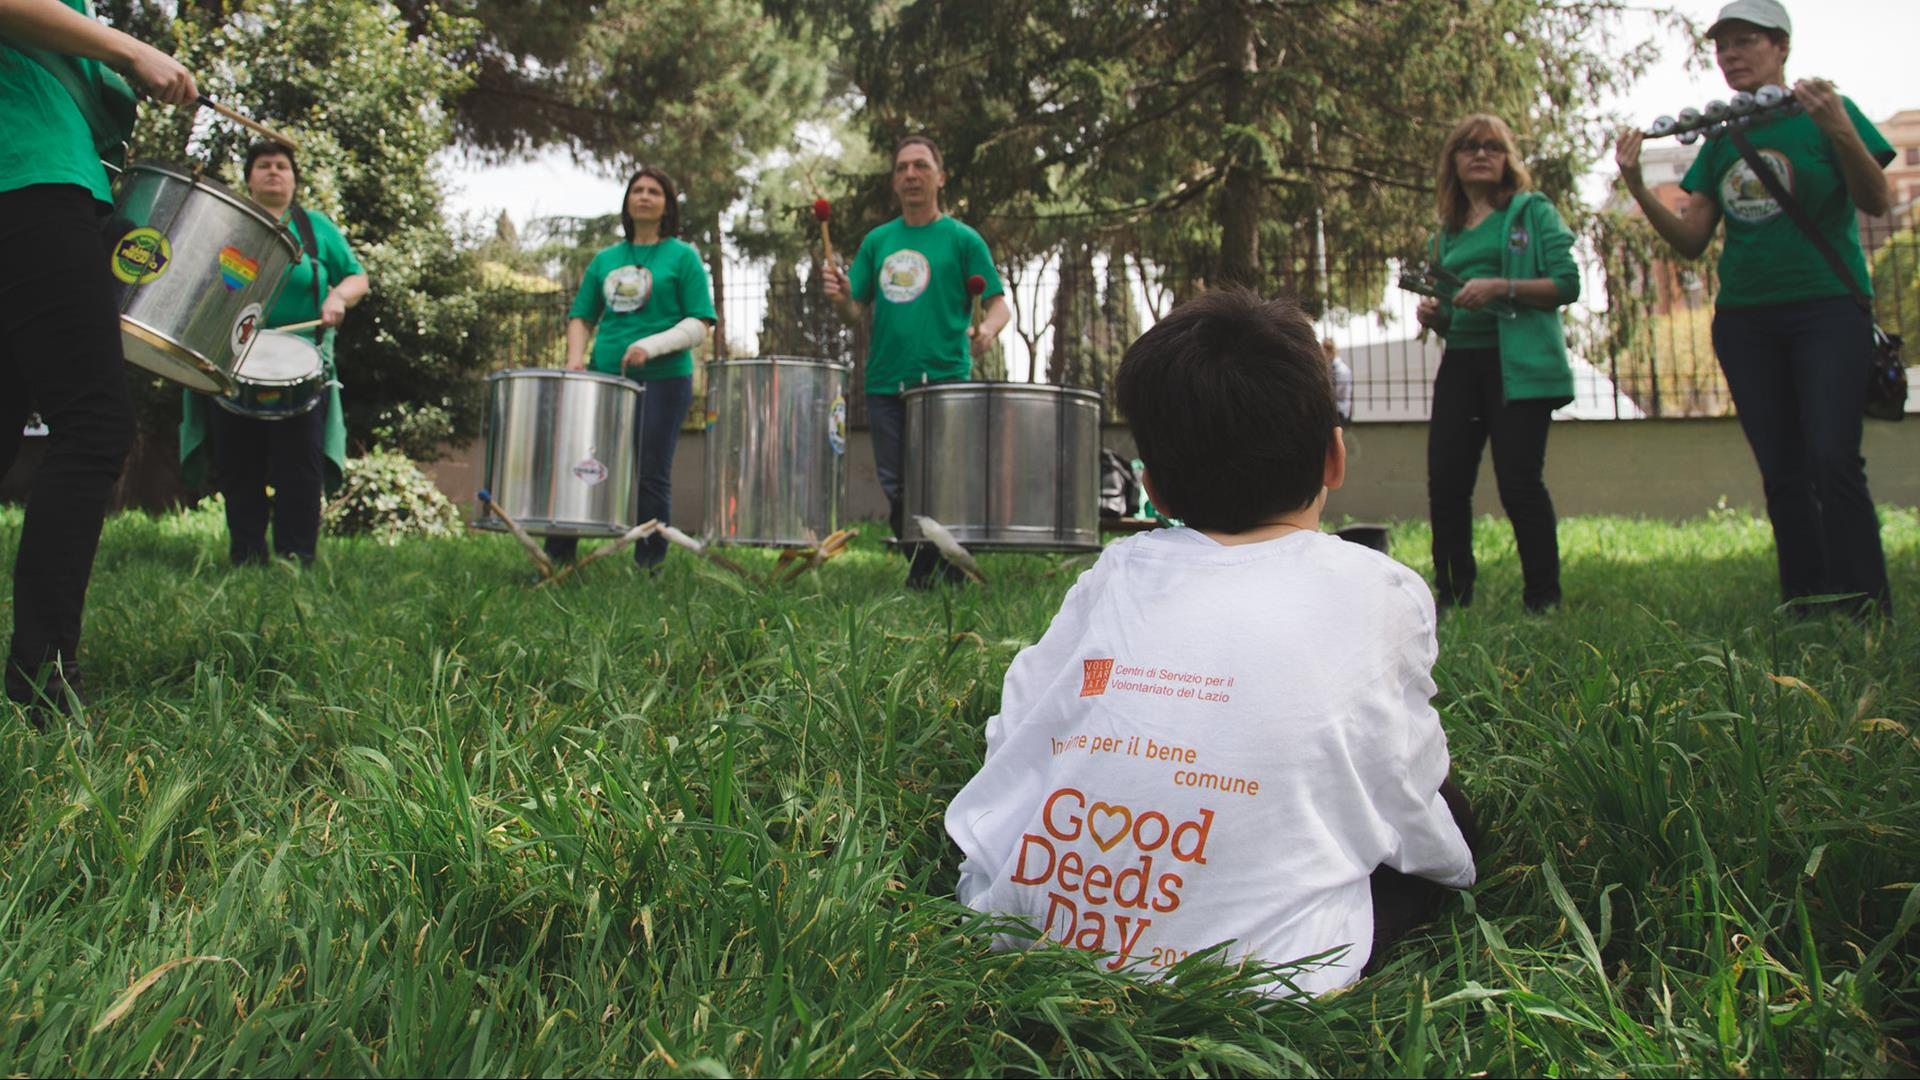 Good deeds day Flickr